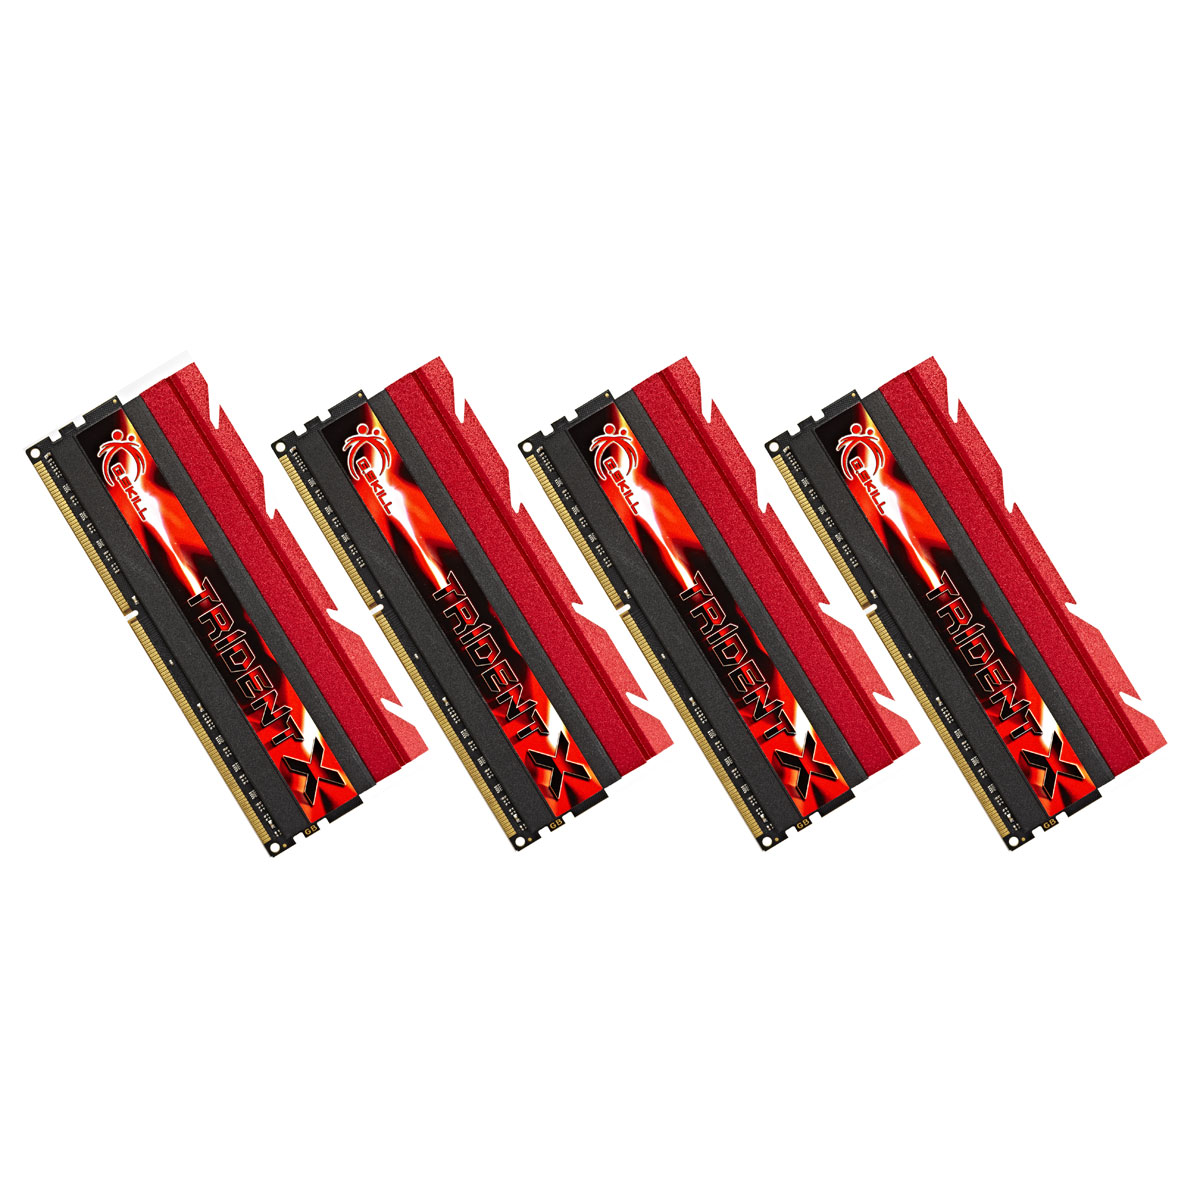 Mémoire PC G.Skill Trident X Series 32 Go (4 x 8 Go) DDR3 1866 MHz CL8 Kit Quad Channel DDR3 PC3-14900 - F3-1866C8Q-32GTX (garantie à vie par G.Skill)